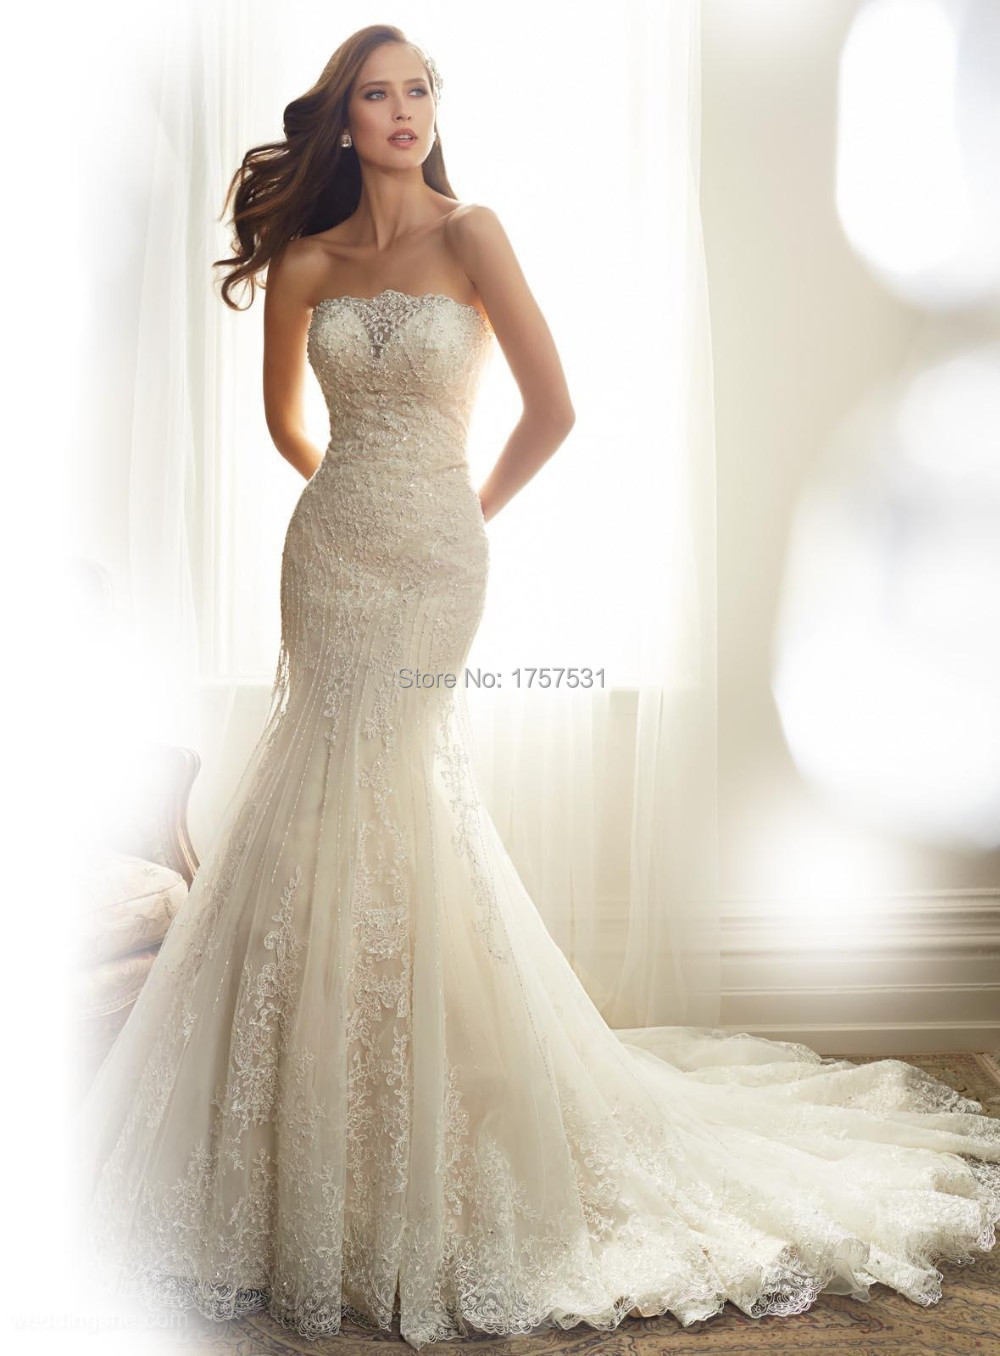 Charming 2015 white ivory elegant mermaid wedding dress for Beading for wedding dress